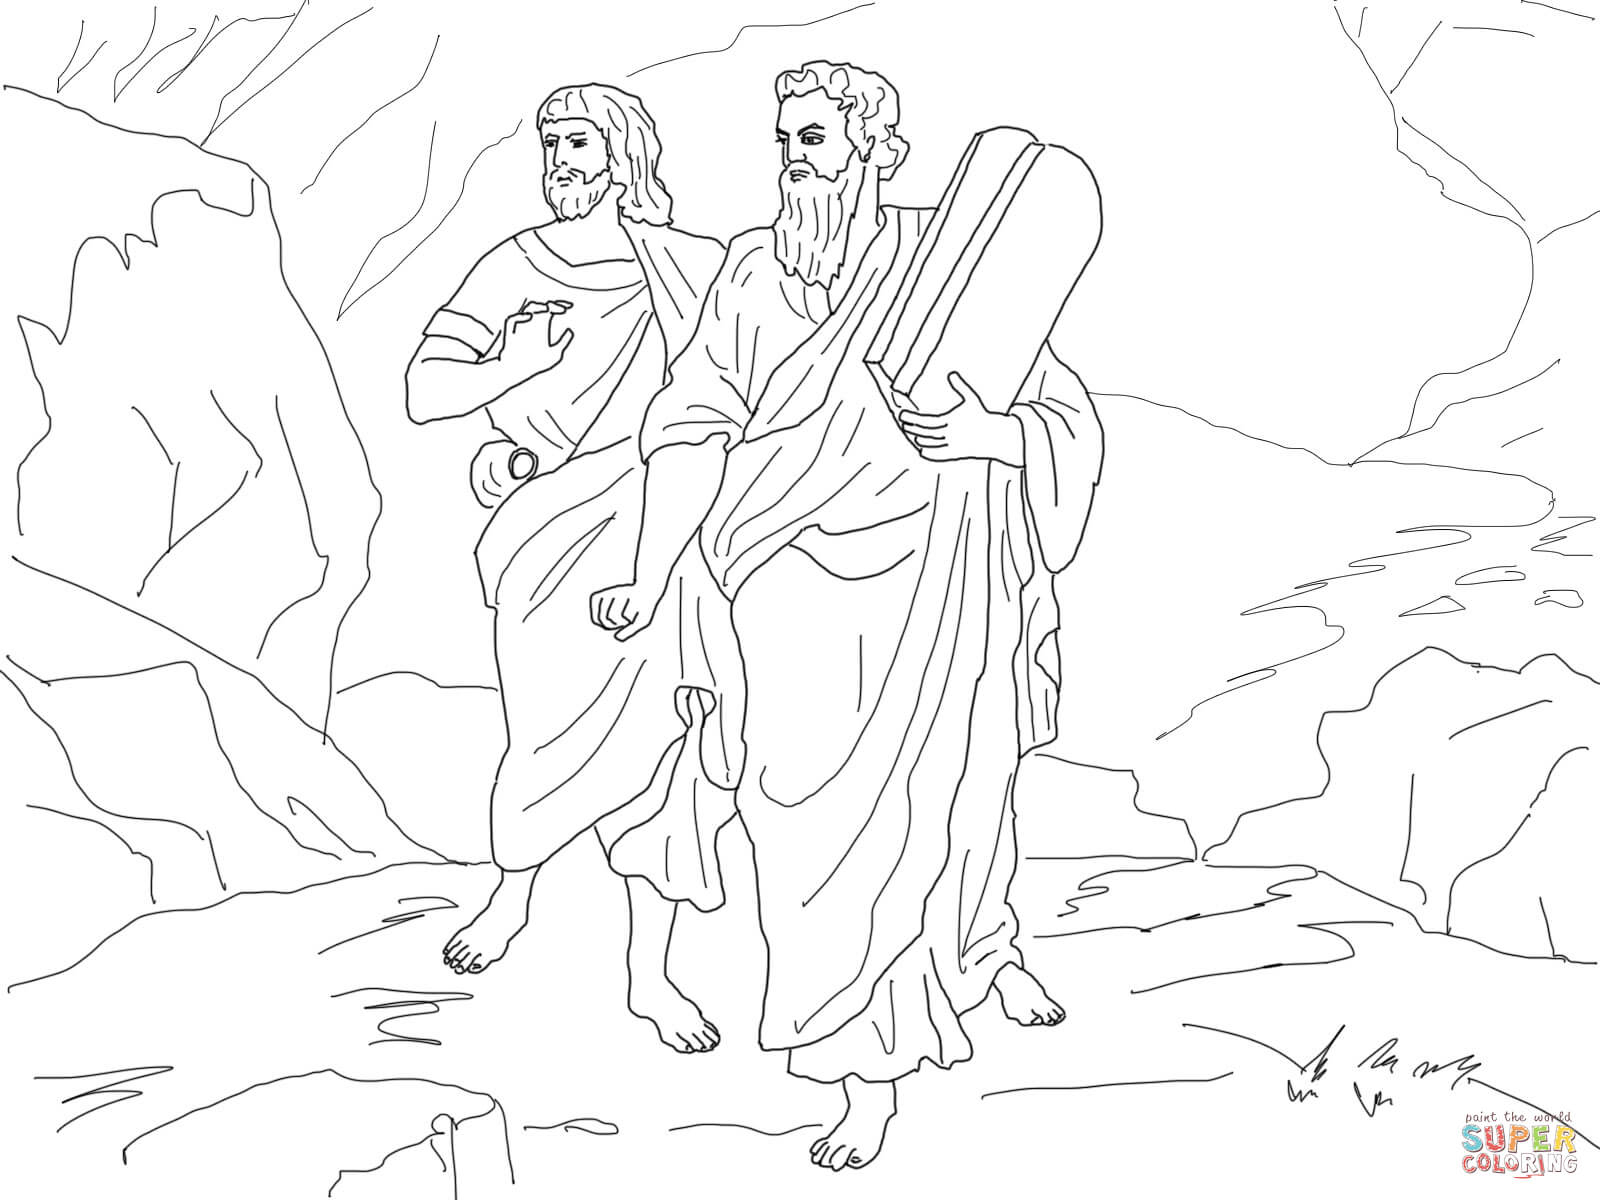 The Golden Calf Coloring Page Moses And Joshua Bearing The Law Coloring Page Free Printable